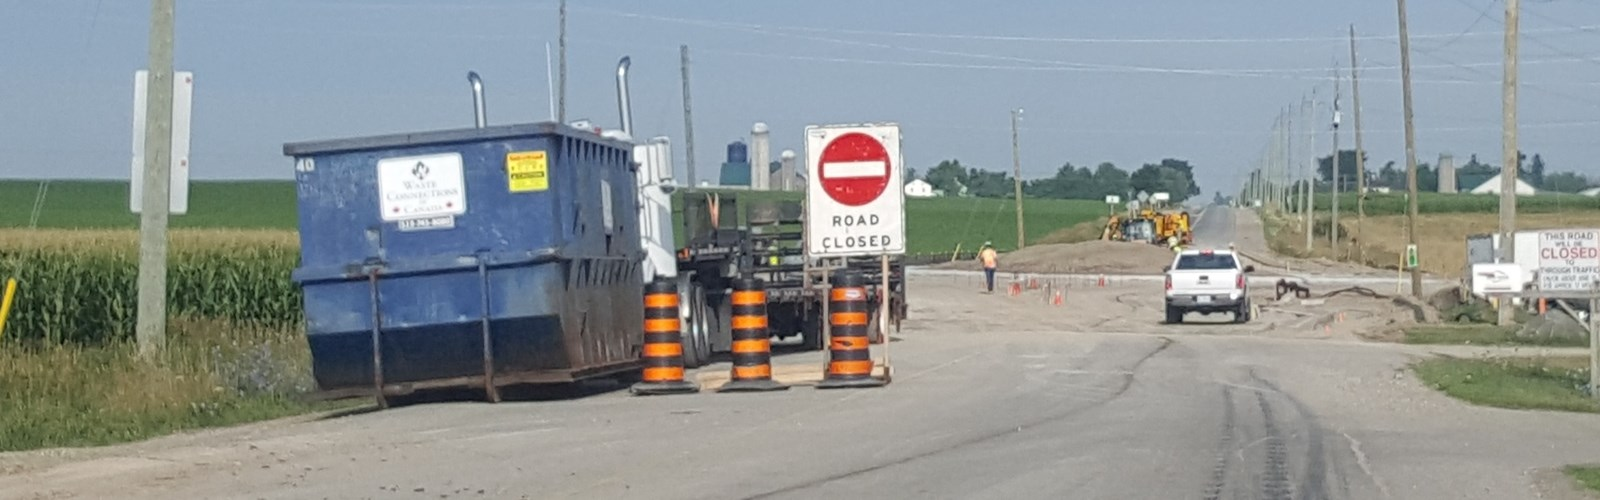 Construction and Road Closures - Region of Waterloo